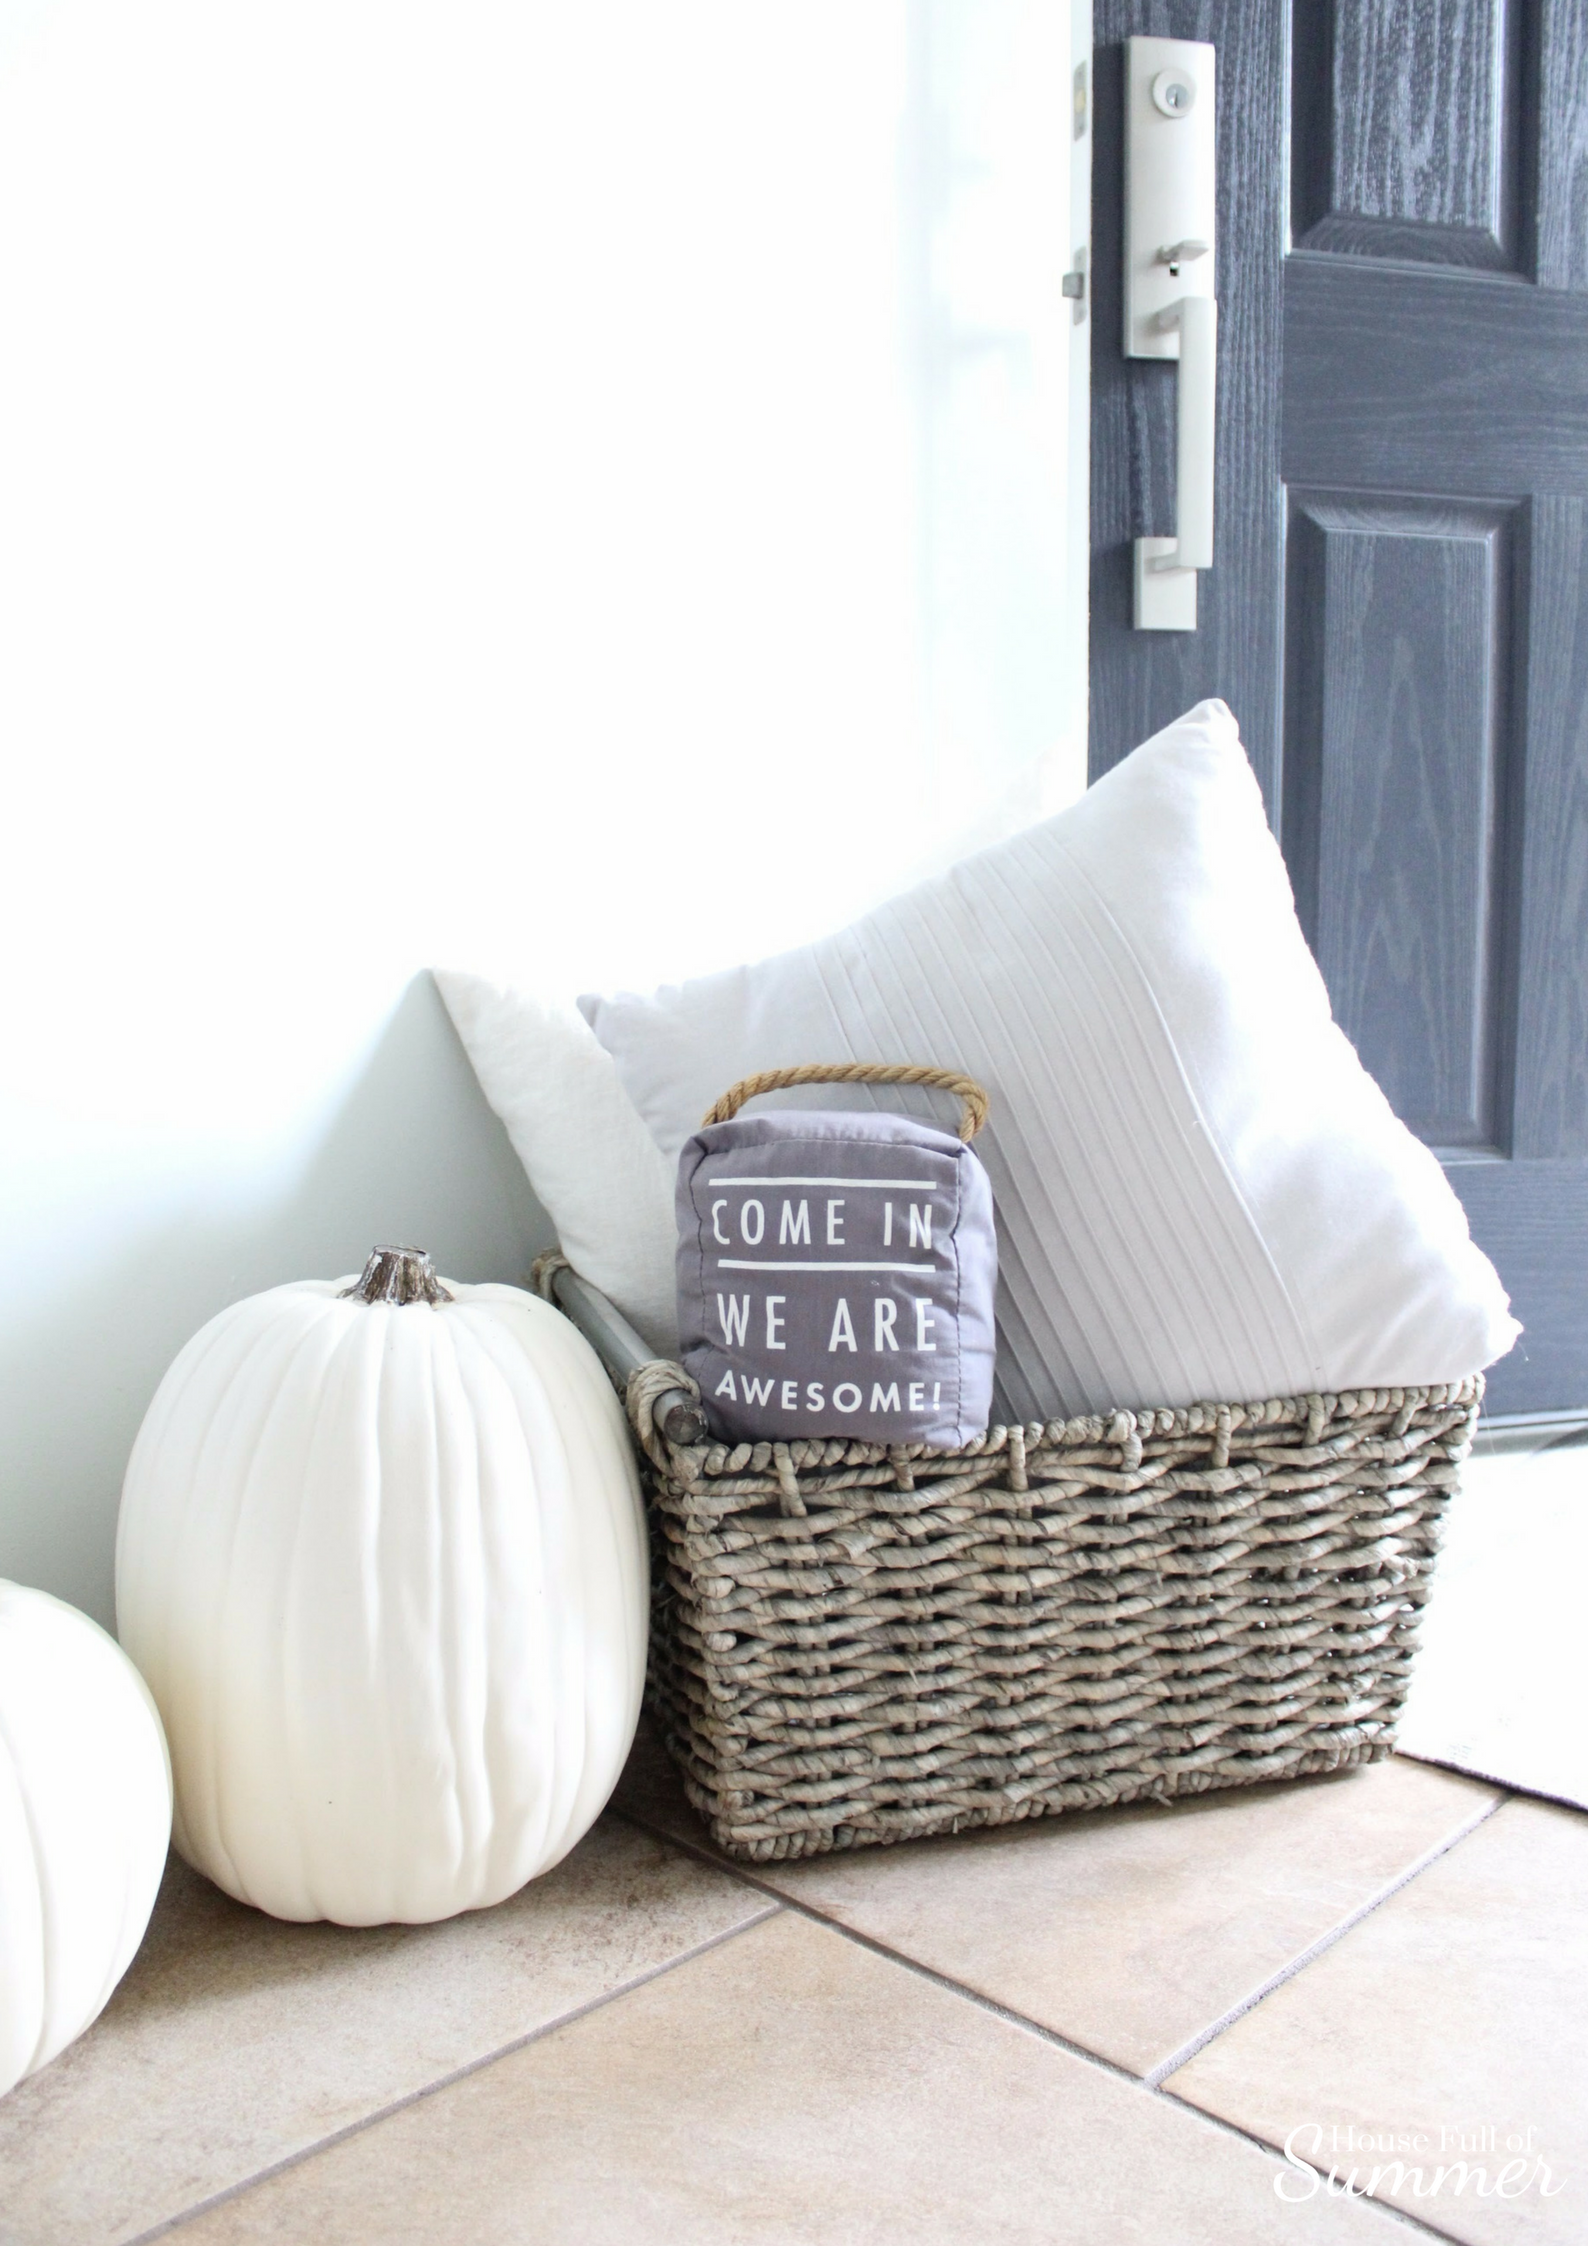 House Full of Summer: Fall Home Tour Blog Hop - Cozy, Coastal, Chic Foyer fall decorating ideas. Neutral interior, white pumpkins, front door decor. Neutral interior, white pumpkins, front door decor.